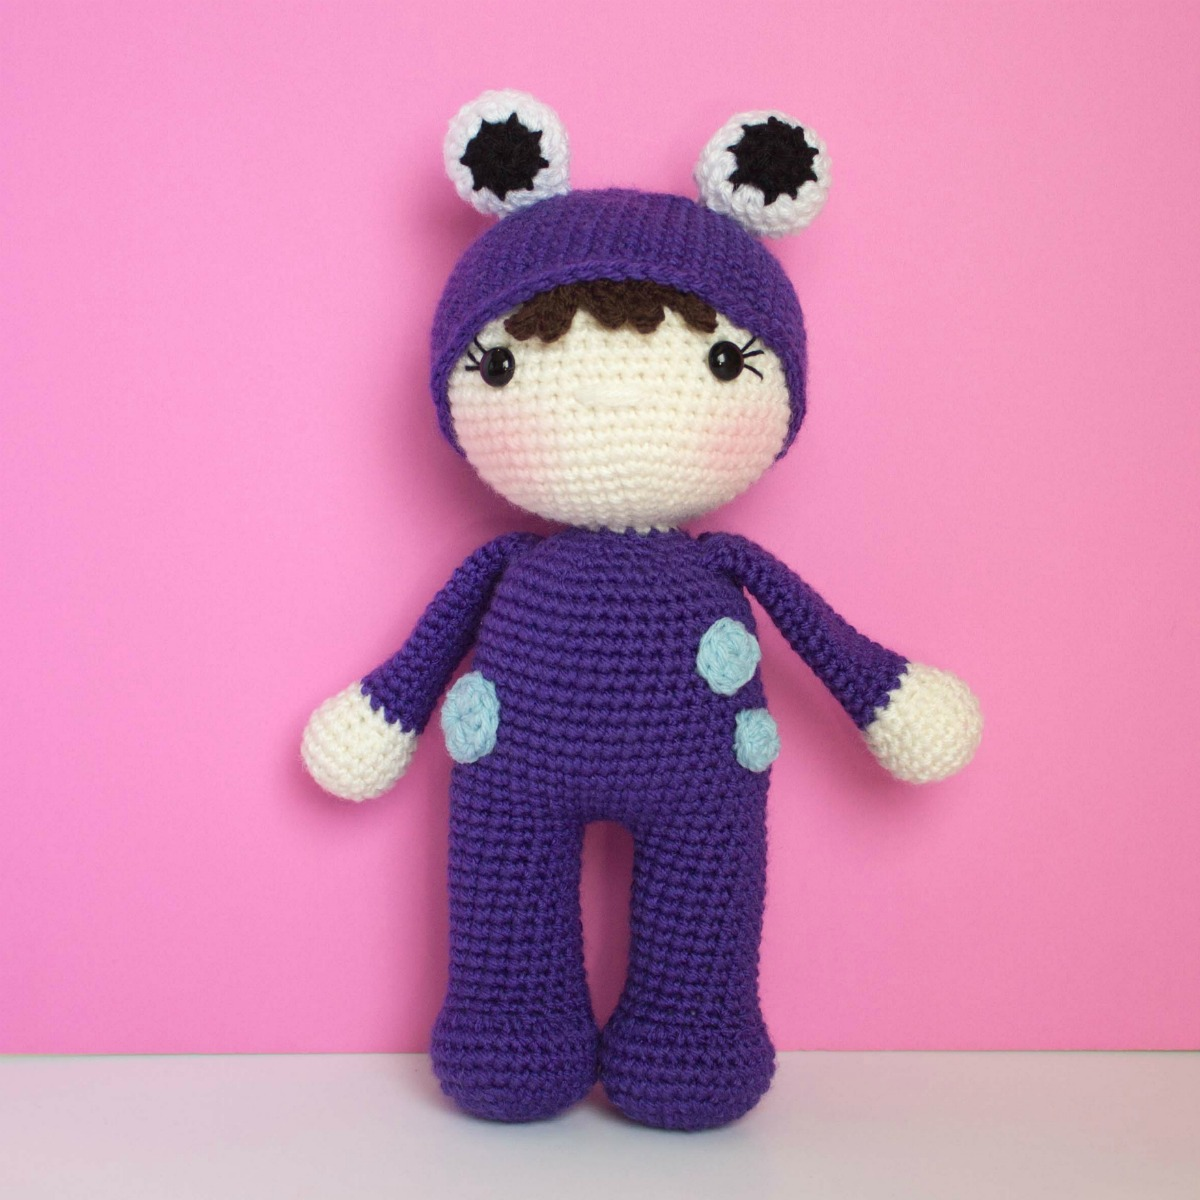 boo from monsters inc. | Crochet: Amigurumi | Knitted dolls ... | 1200x1200